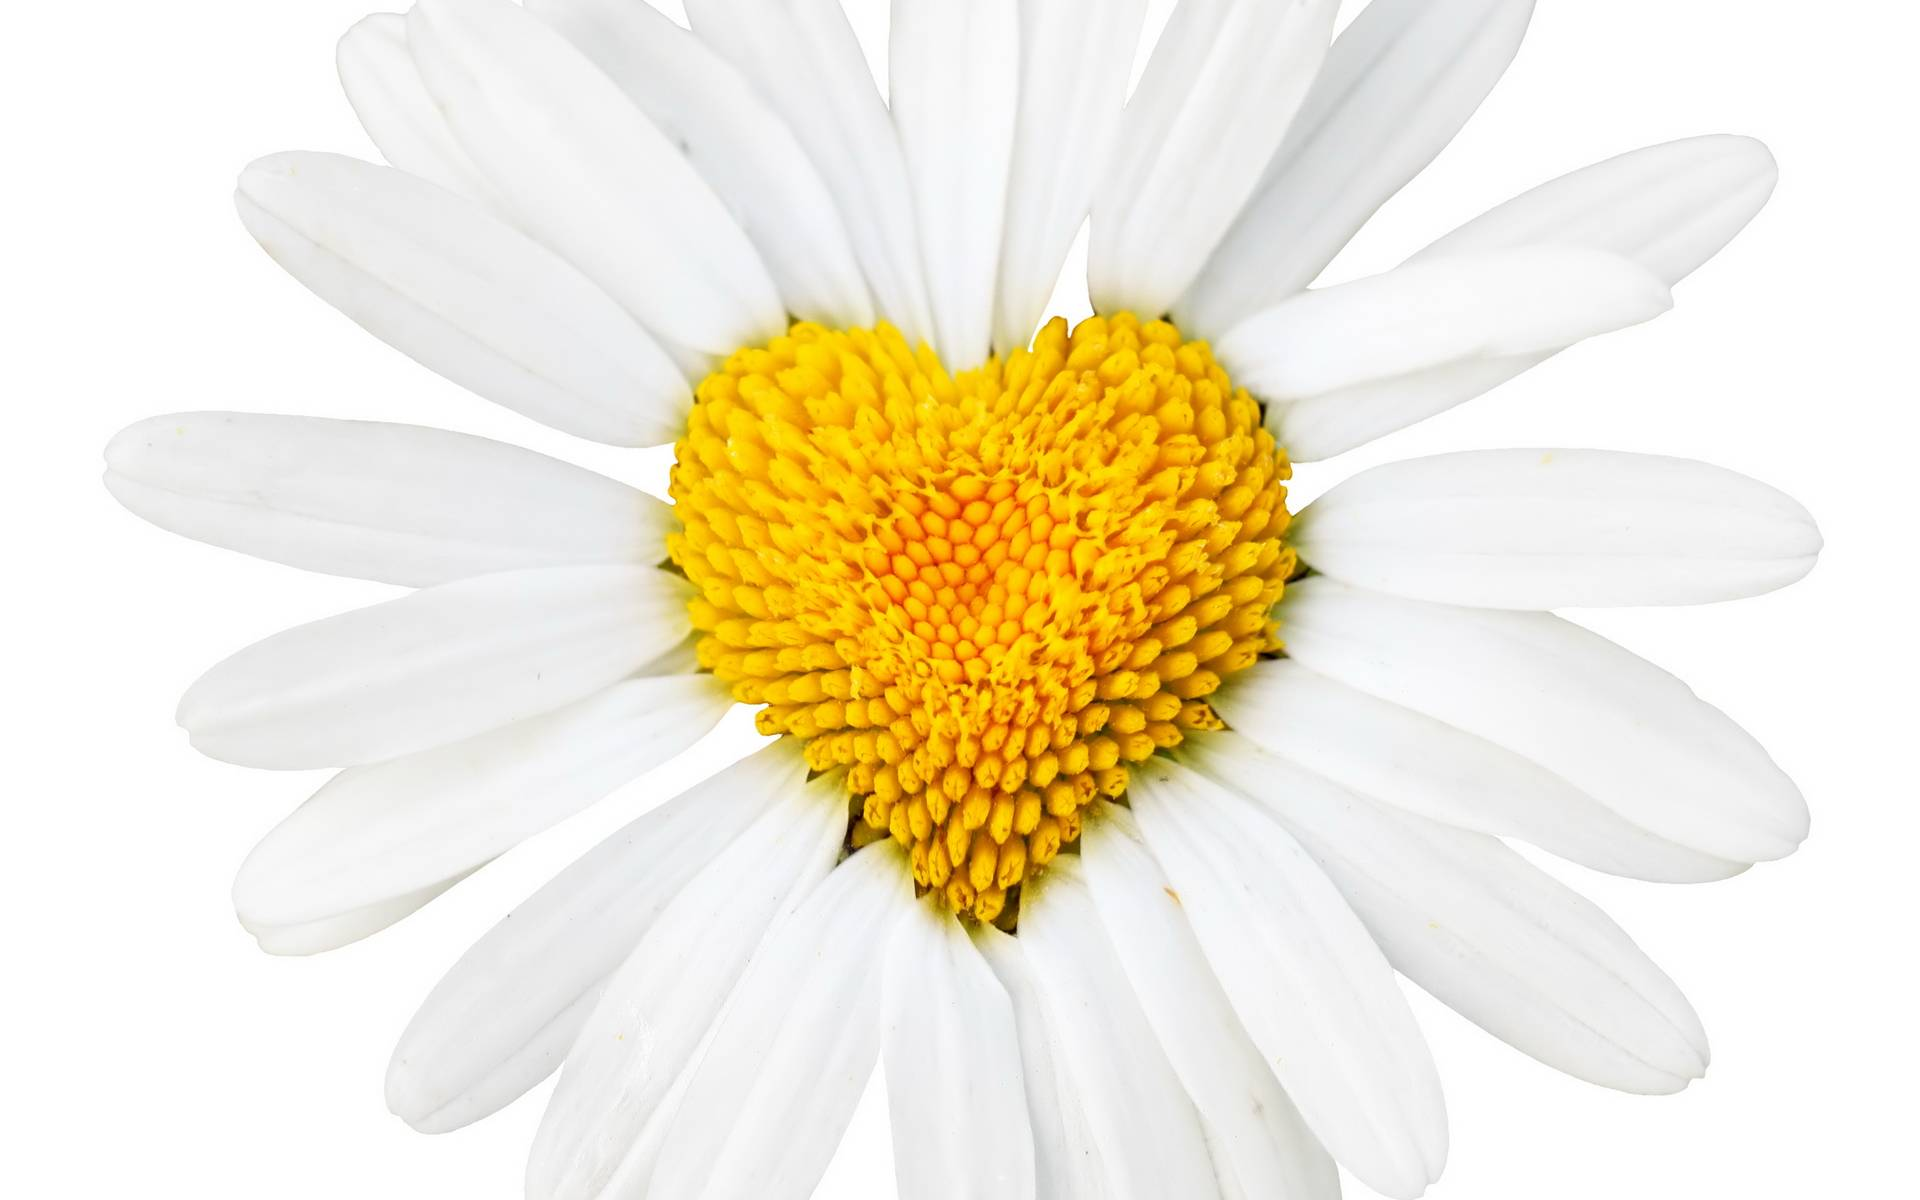 White Daisy with Yellow Heart 409.73 Kb